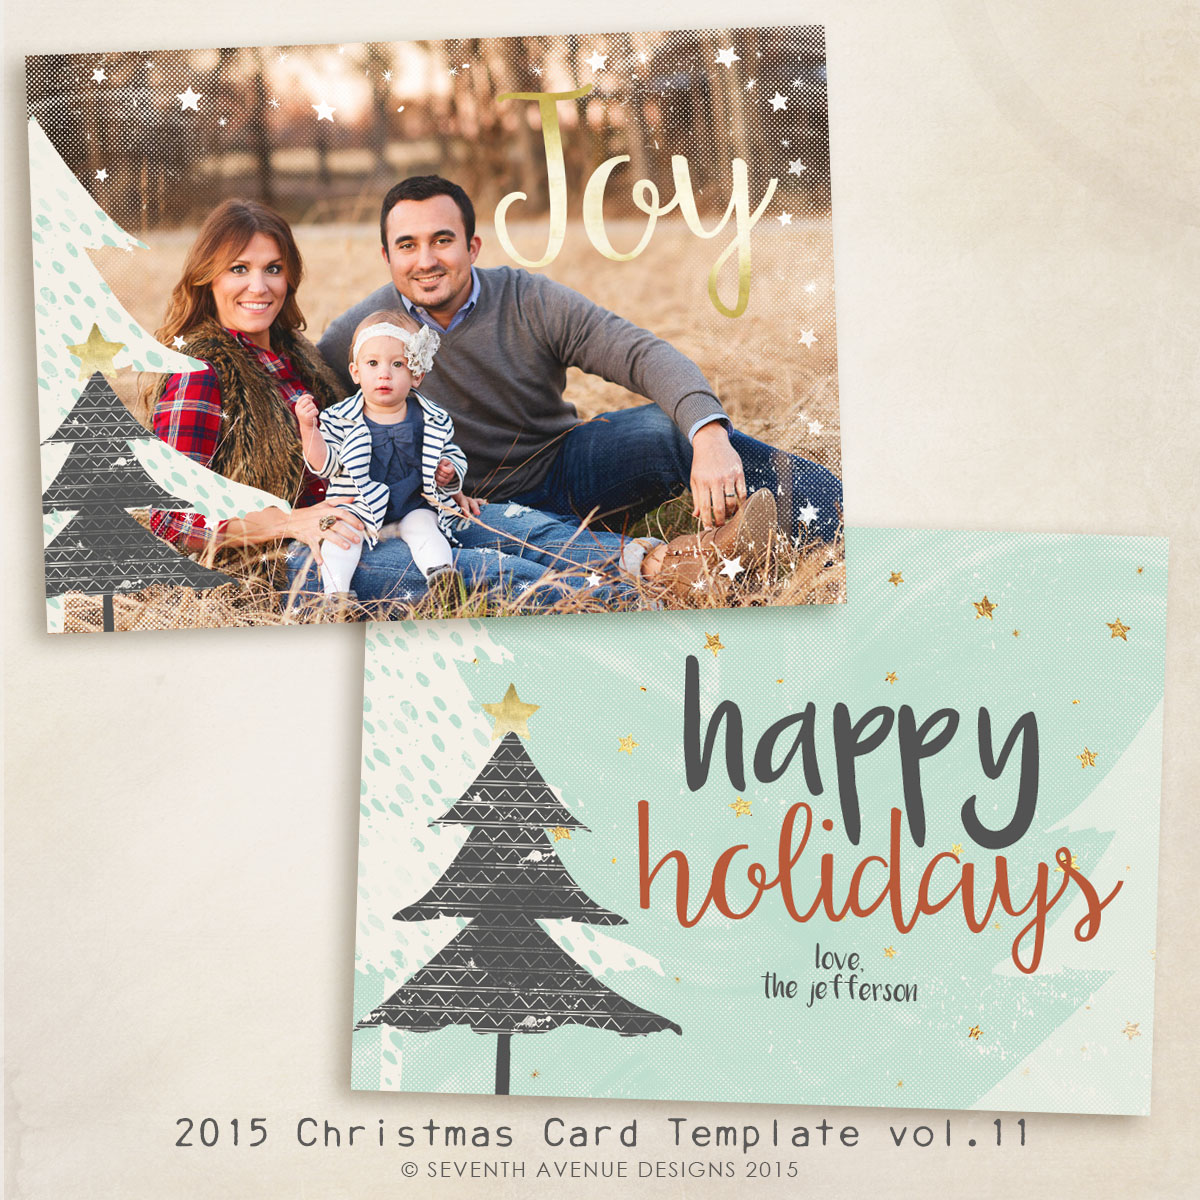 2015 Christmas Card Templates vol.11 -- 7x5 inch card template